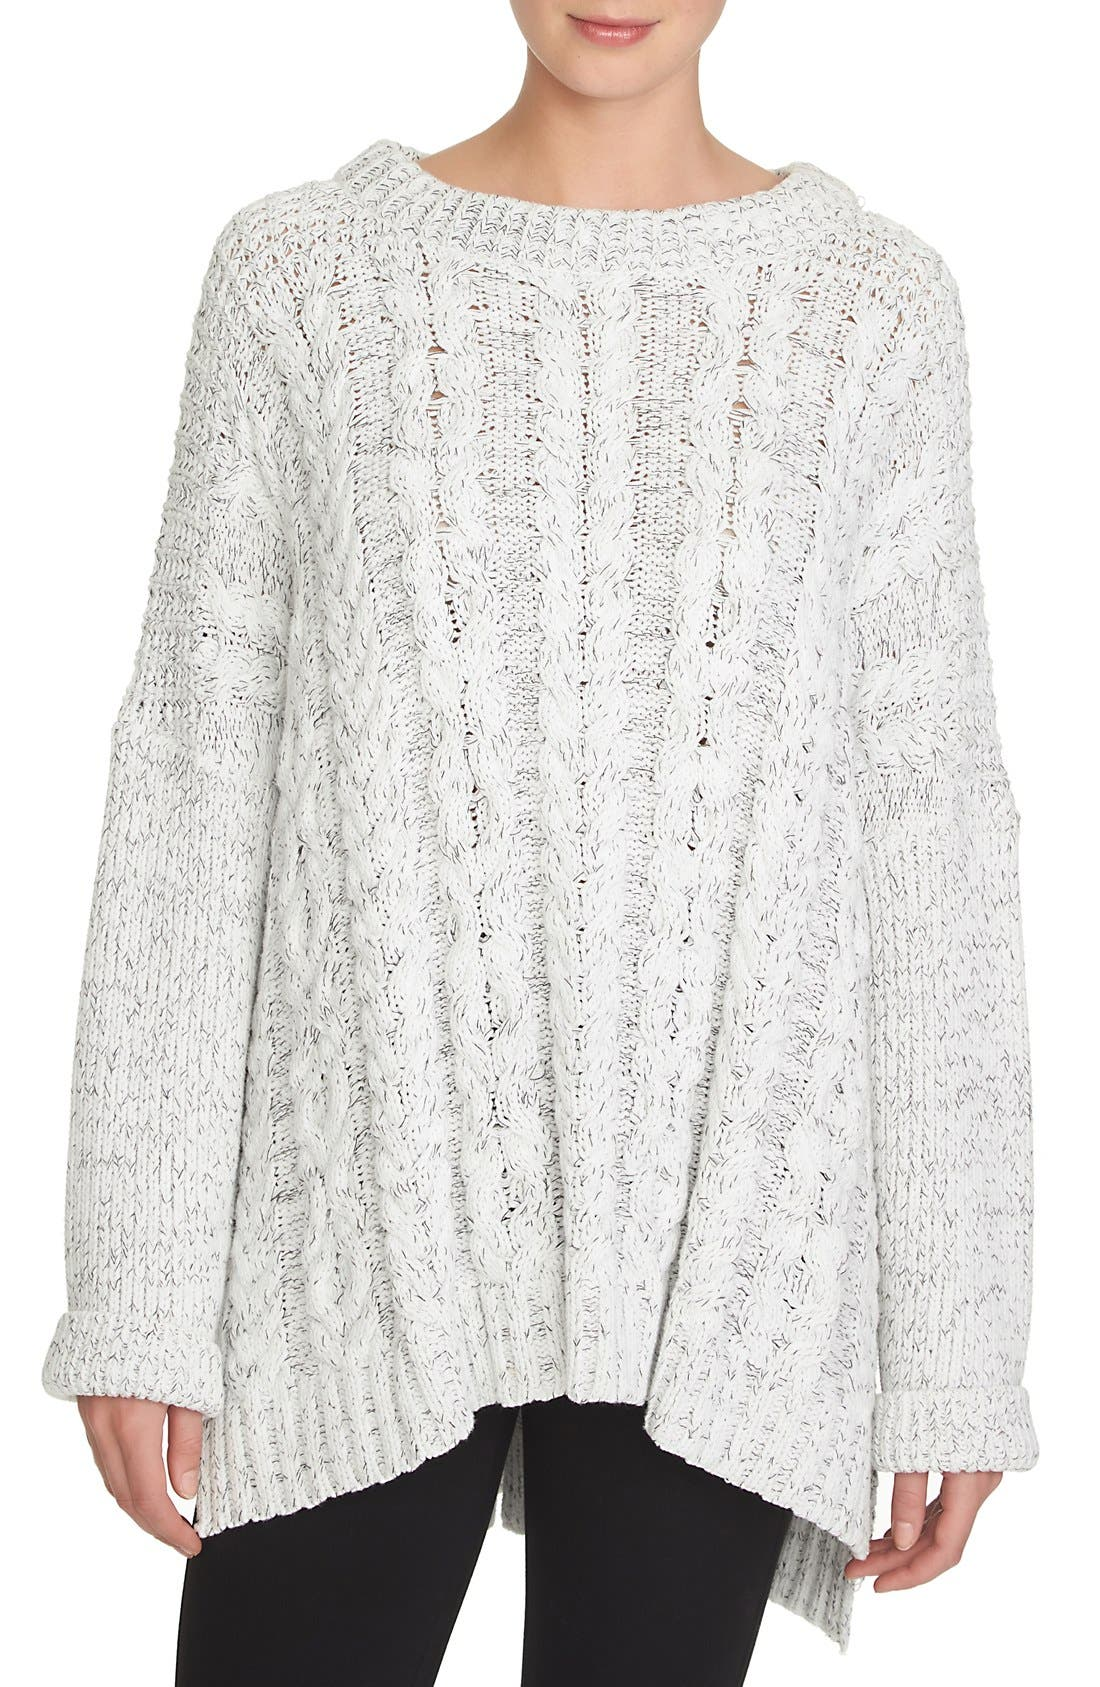 Alternate Image 1 Selected - 1.STATE Cable Knit Poncho Sweater